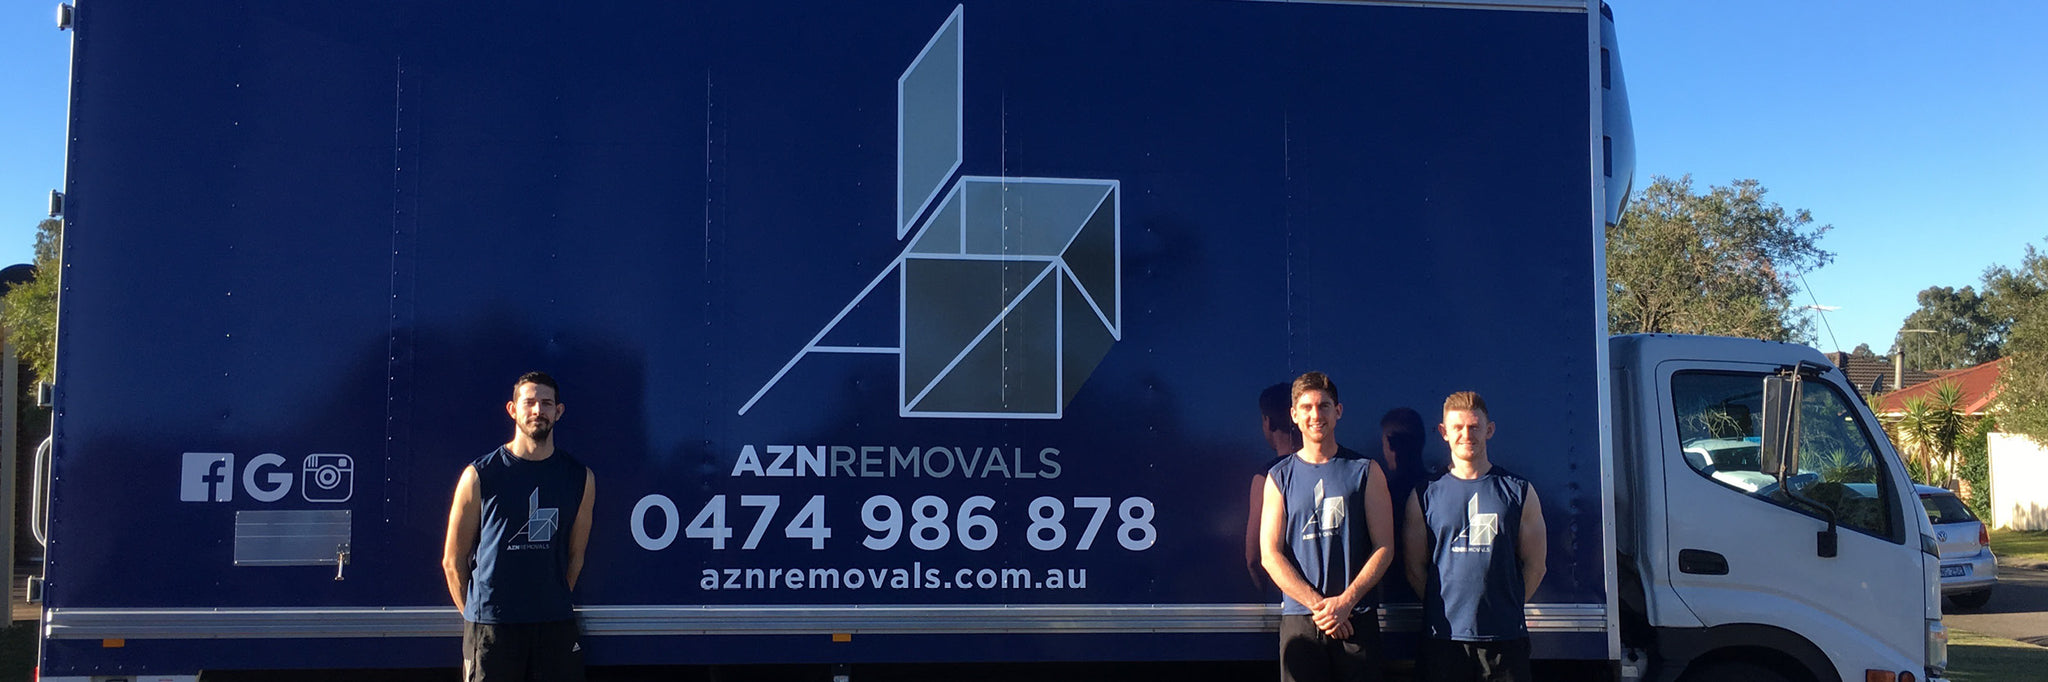 AZN Removals - Contact us